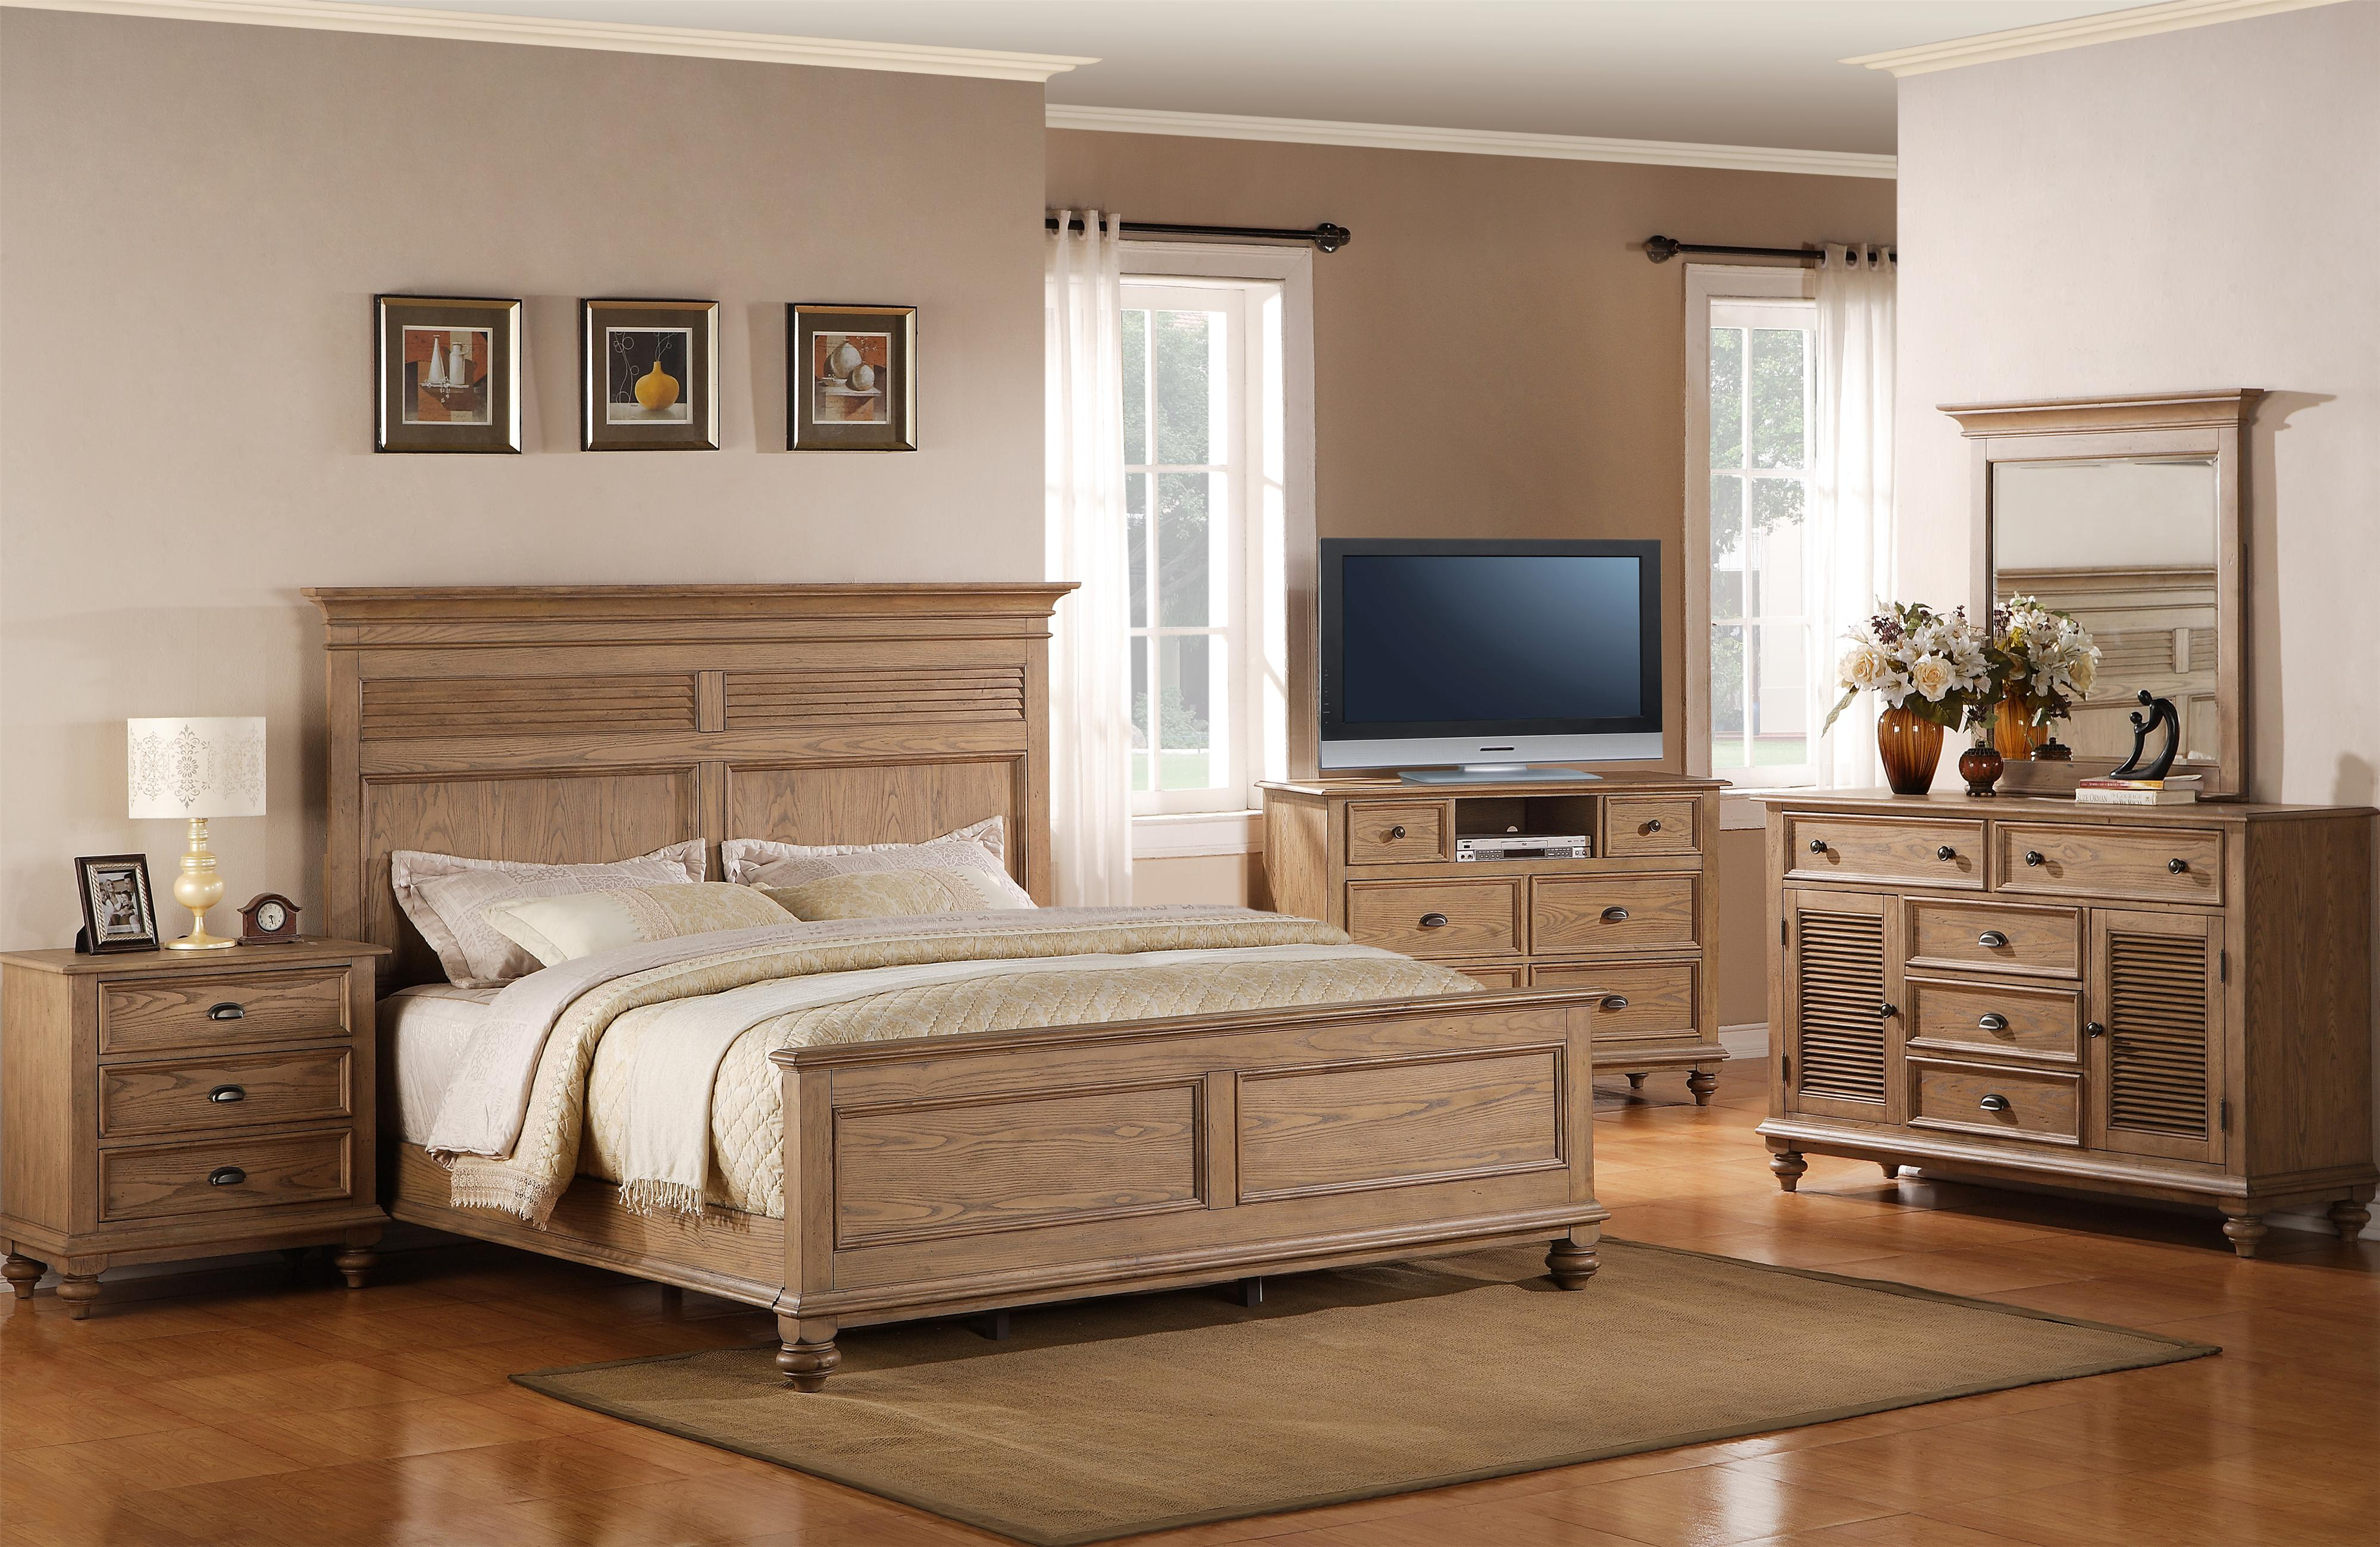 Riverside Furniture Coventry King Bedroom Group Jacksonville Furniture Mart Bedroom Group